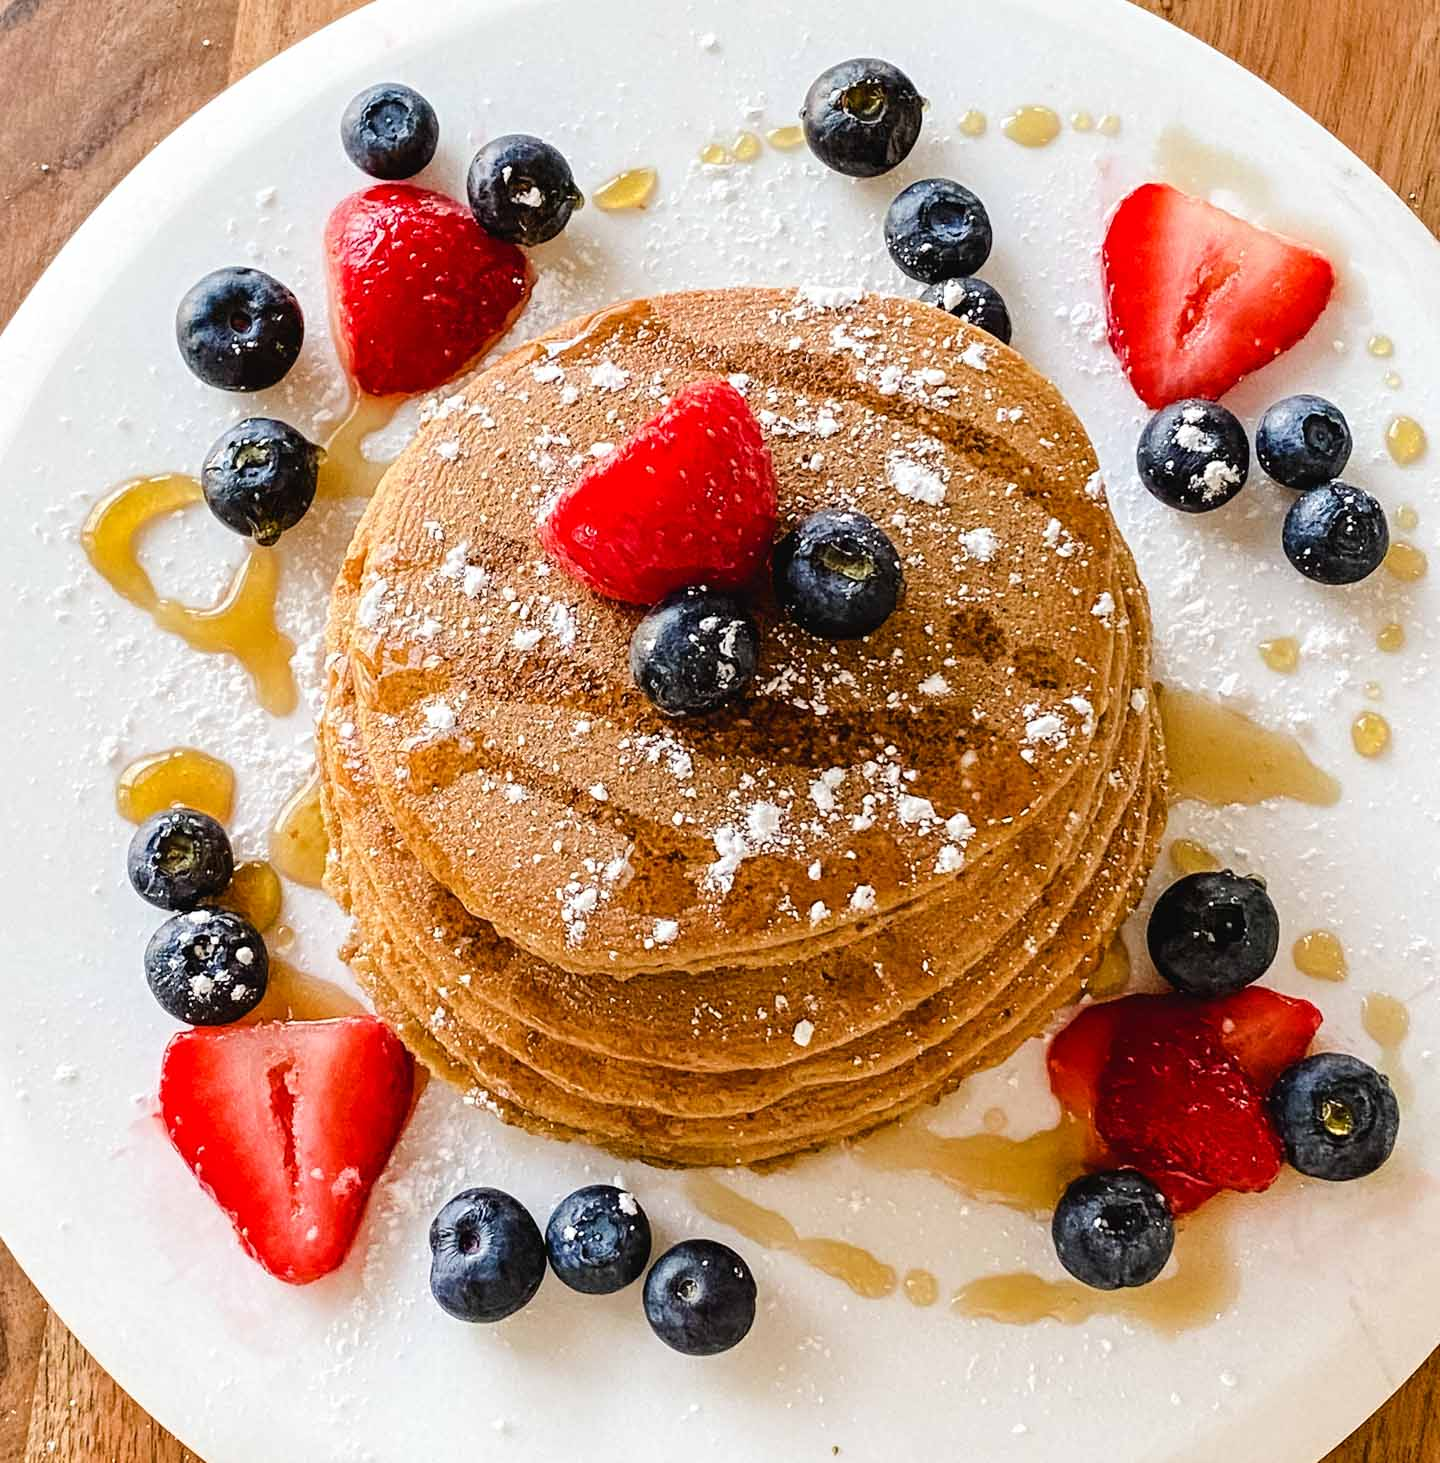 Pancakes on a plate with stawberries, blueberries, powdered sugar and maple syrup.